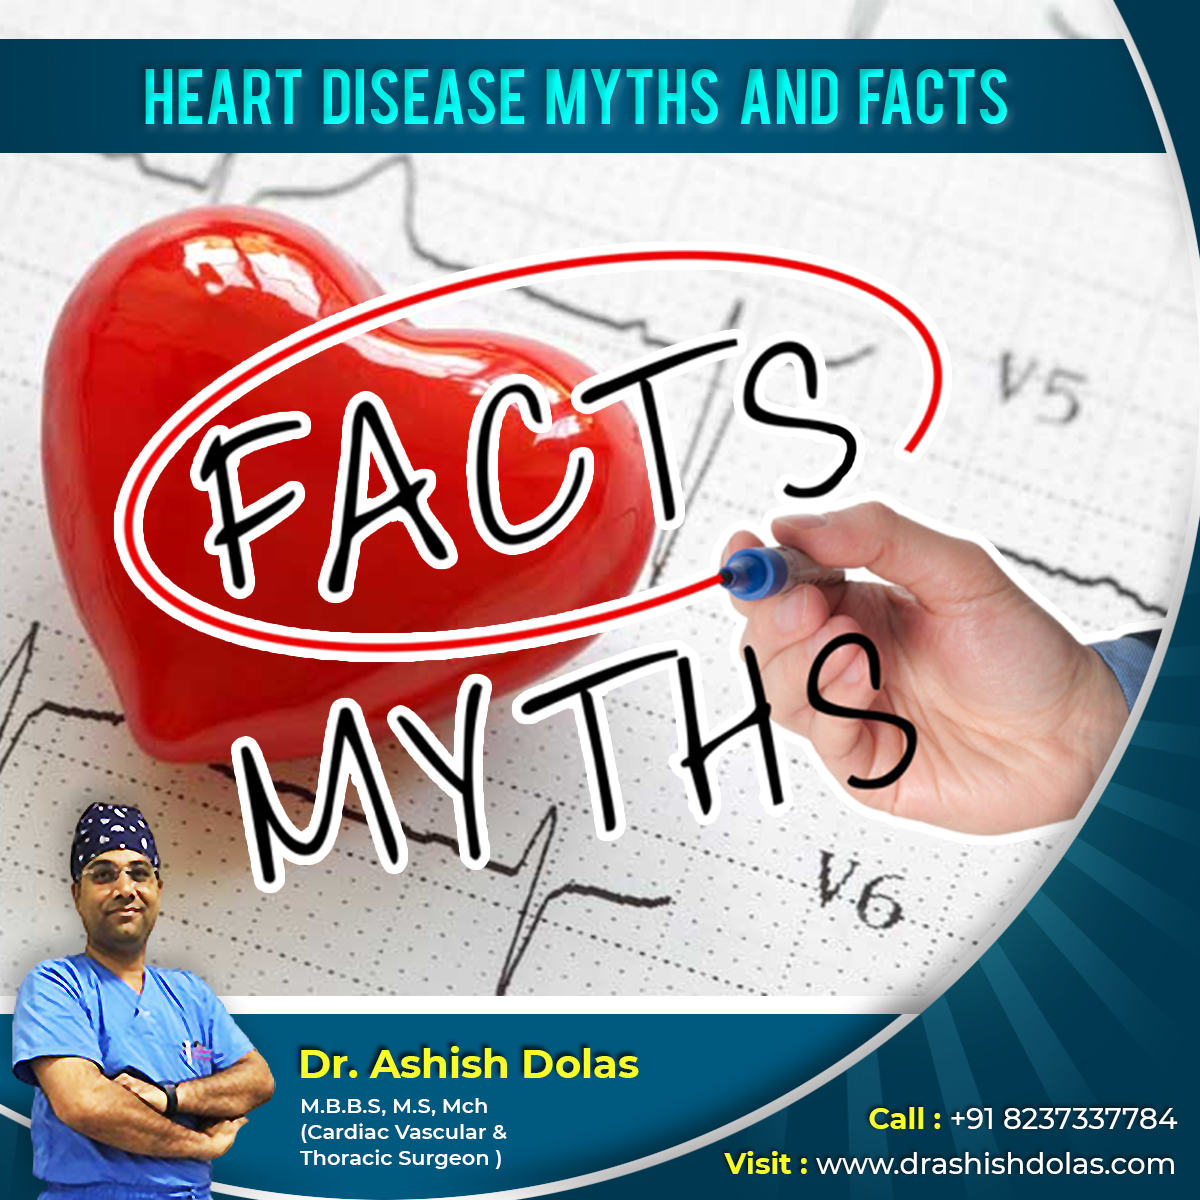 Heart Disease Myths & Facts by Dr. Ashish Dolas